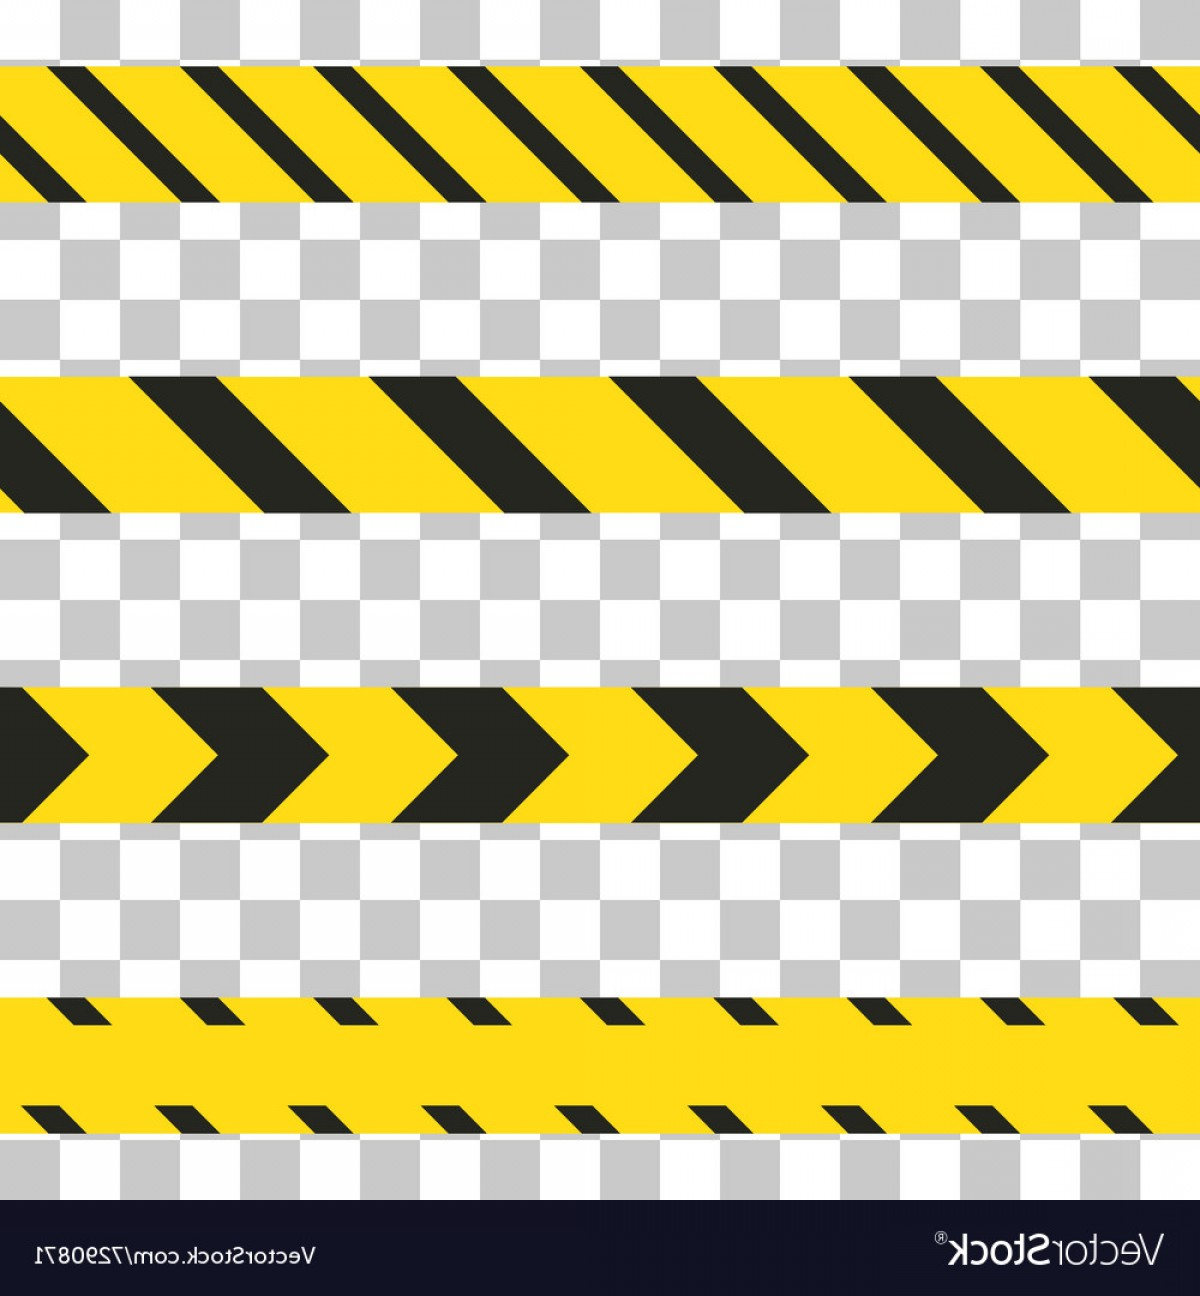 Caution Stripes Vector: Do Not Cross The Line Caution Tape Vector